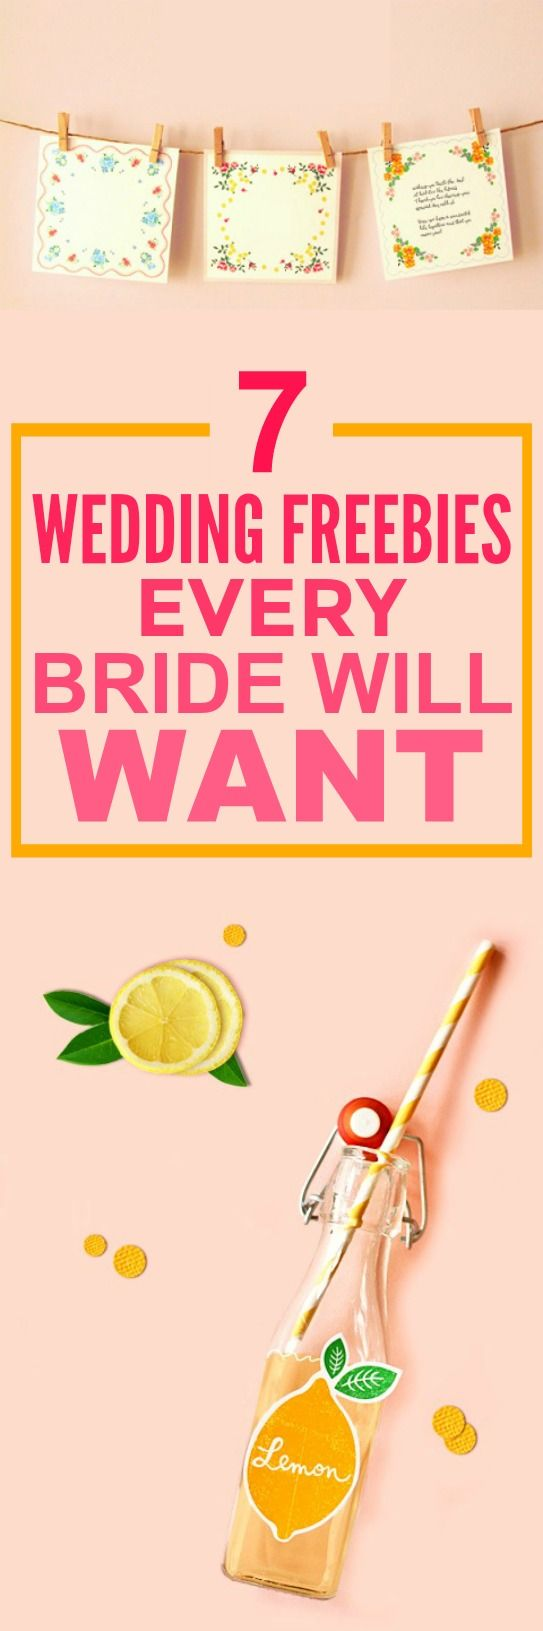 These 7 wedding freebies are THE BEST! I'm so happy I found this AMAZING post! These tips and hacks will save me SO MUCH money! SO pinning for later!